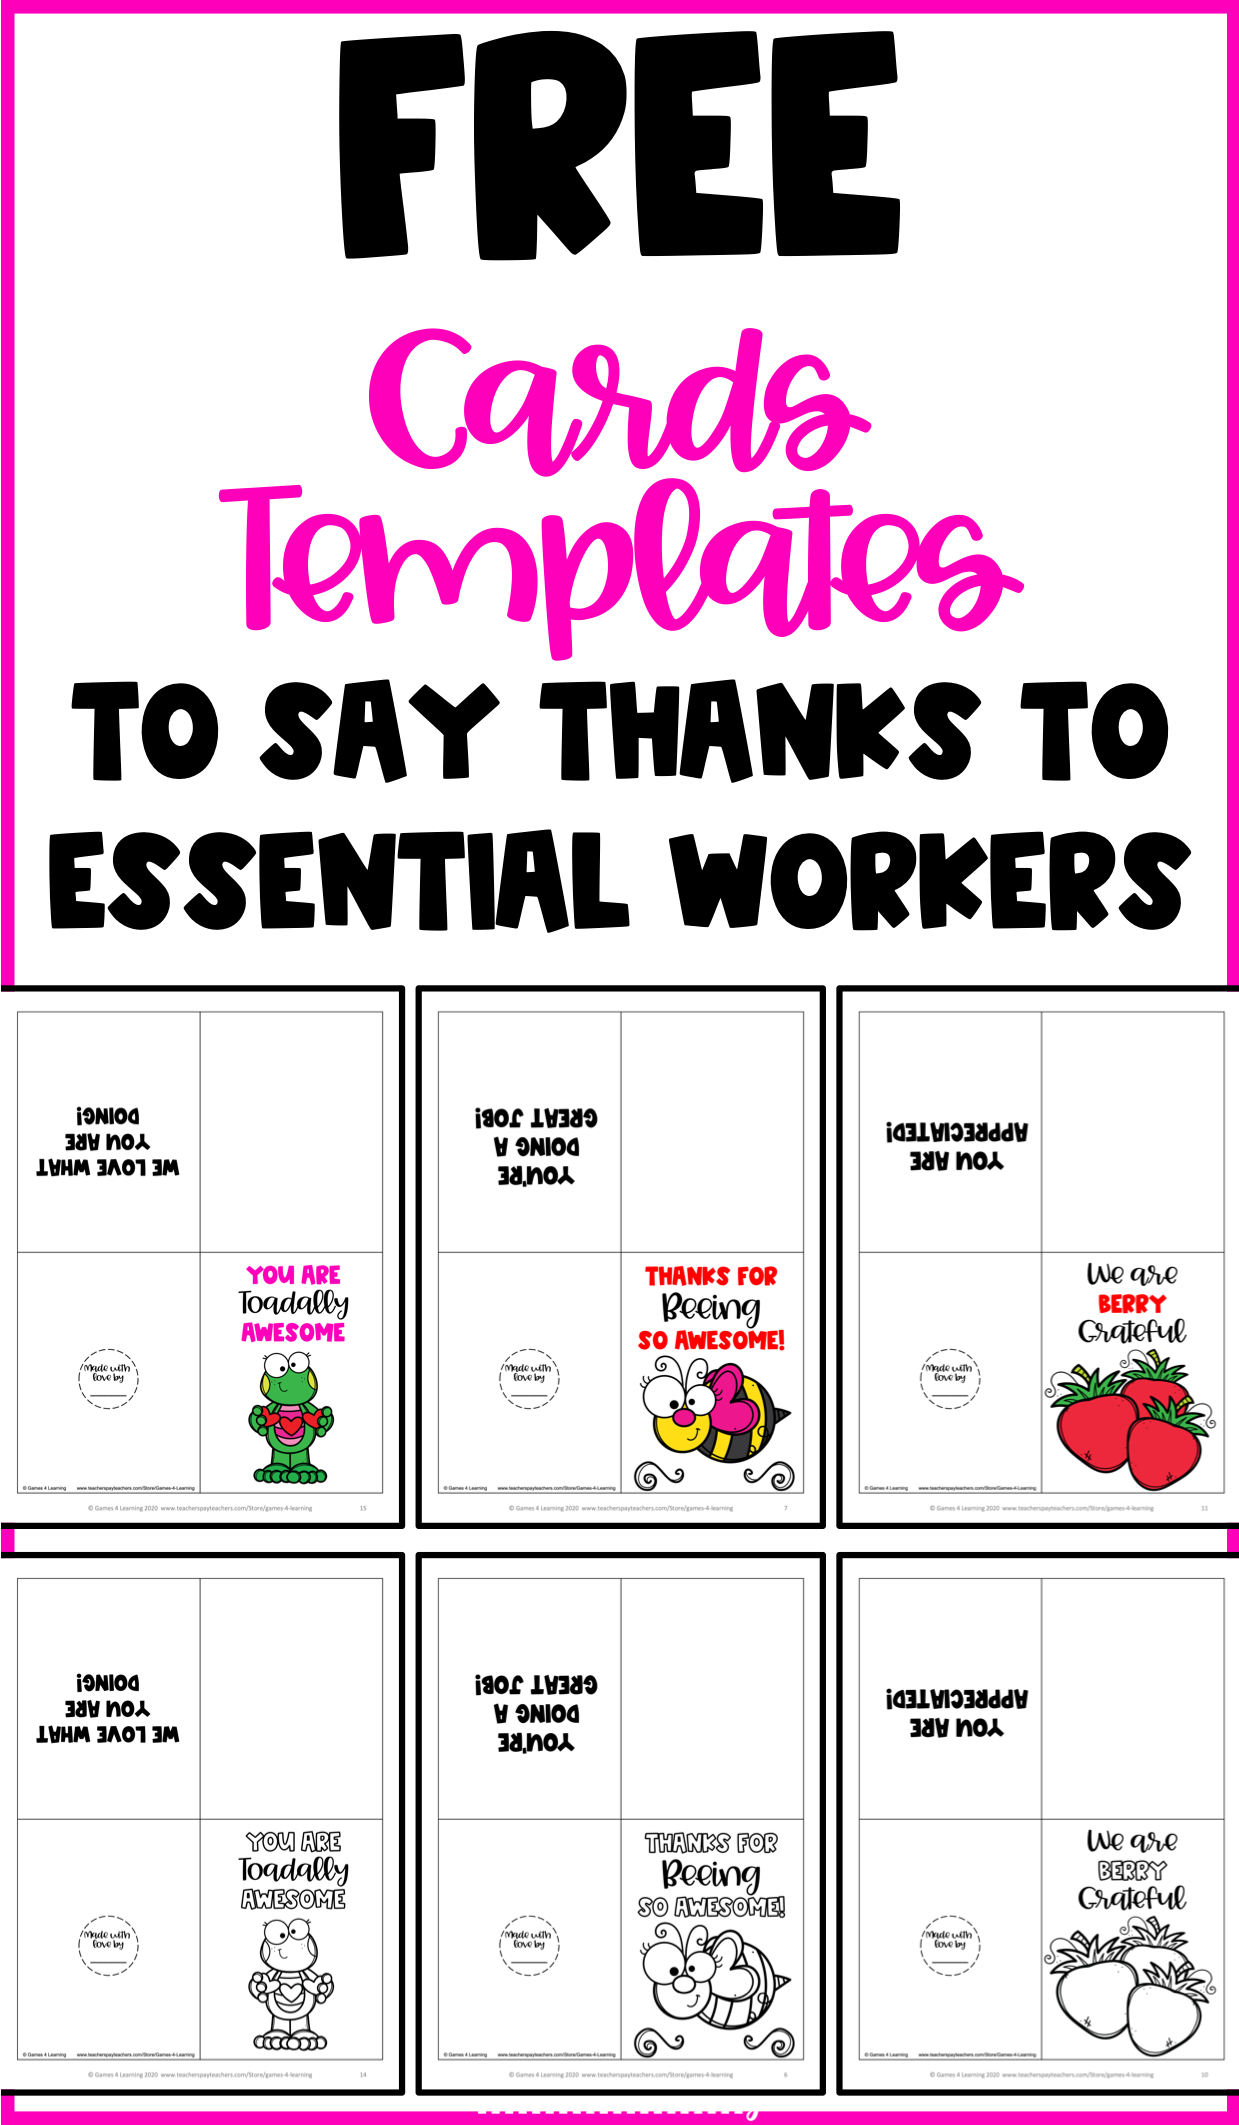 Free Thank You Cards Templates To Thank Essential Workers Gratitude Cards Handmade Thank You Cards Thank You Card Template